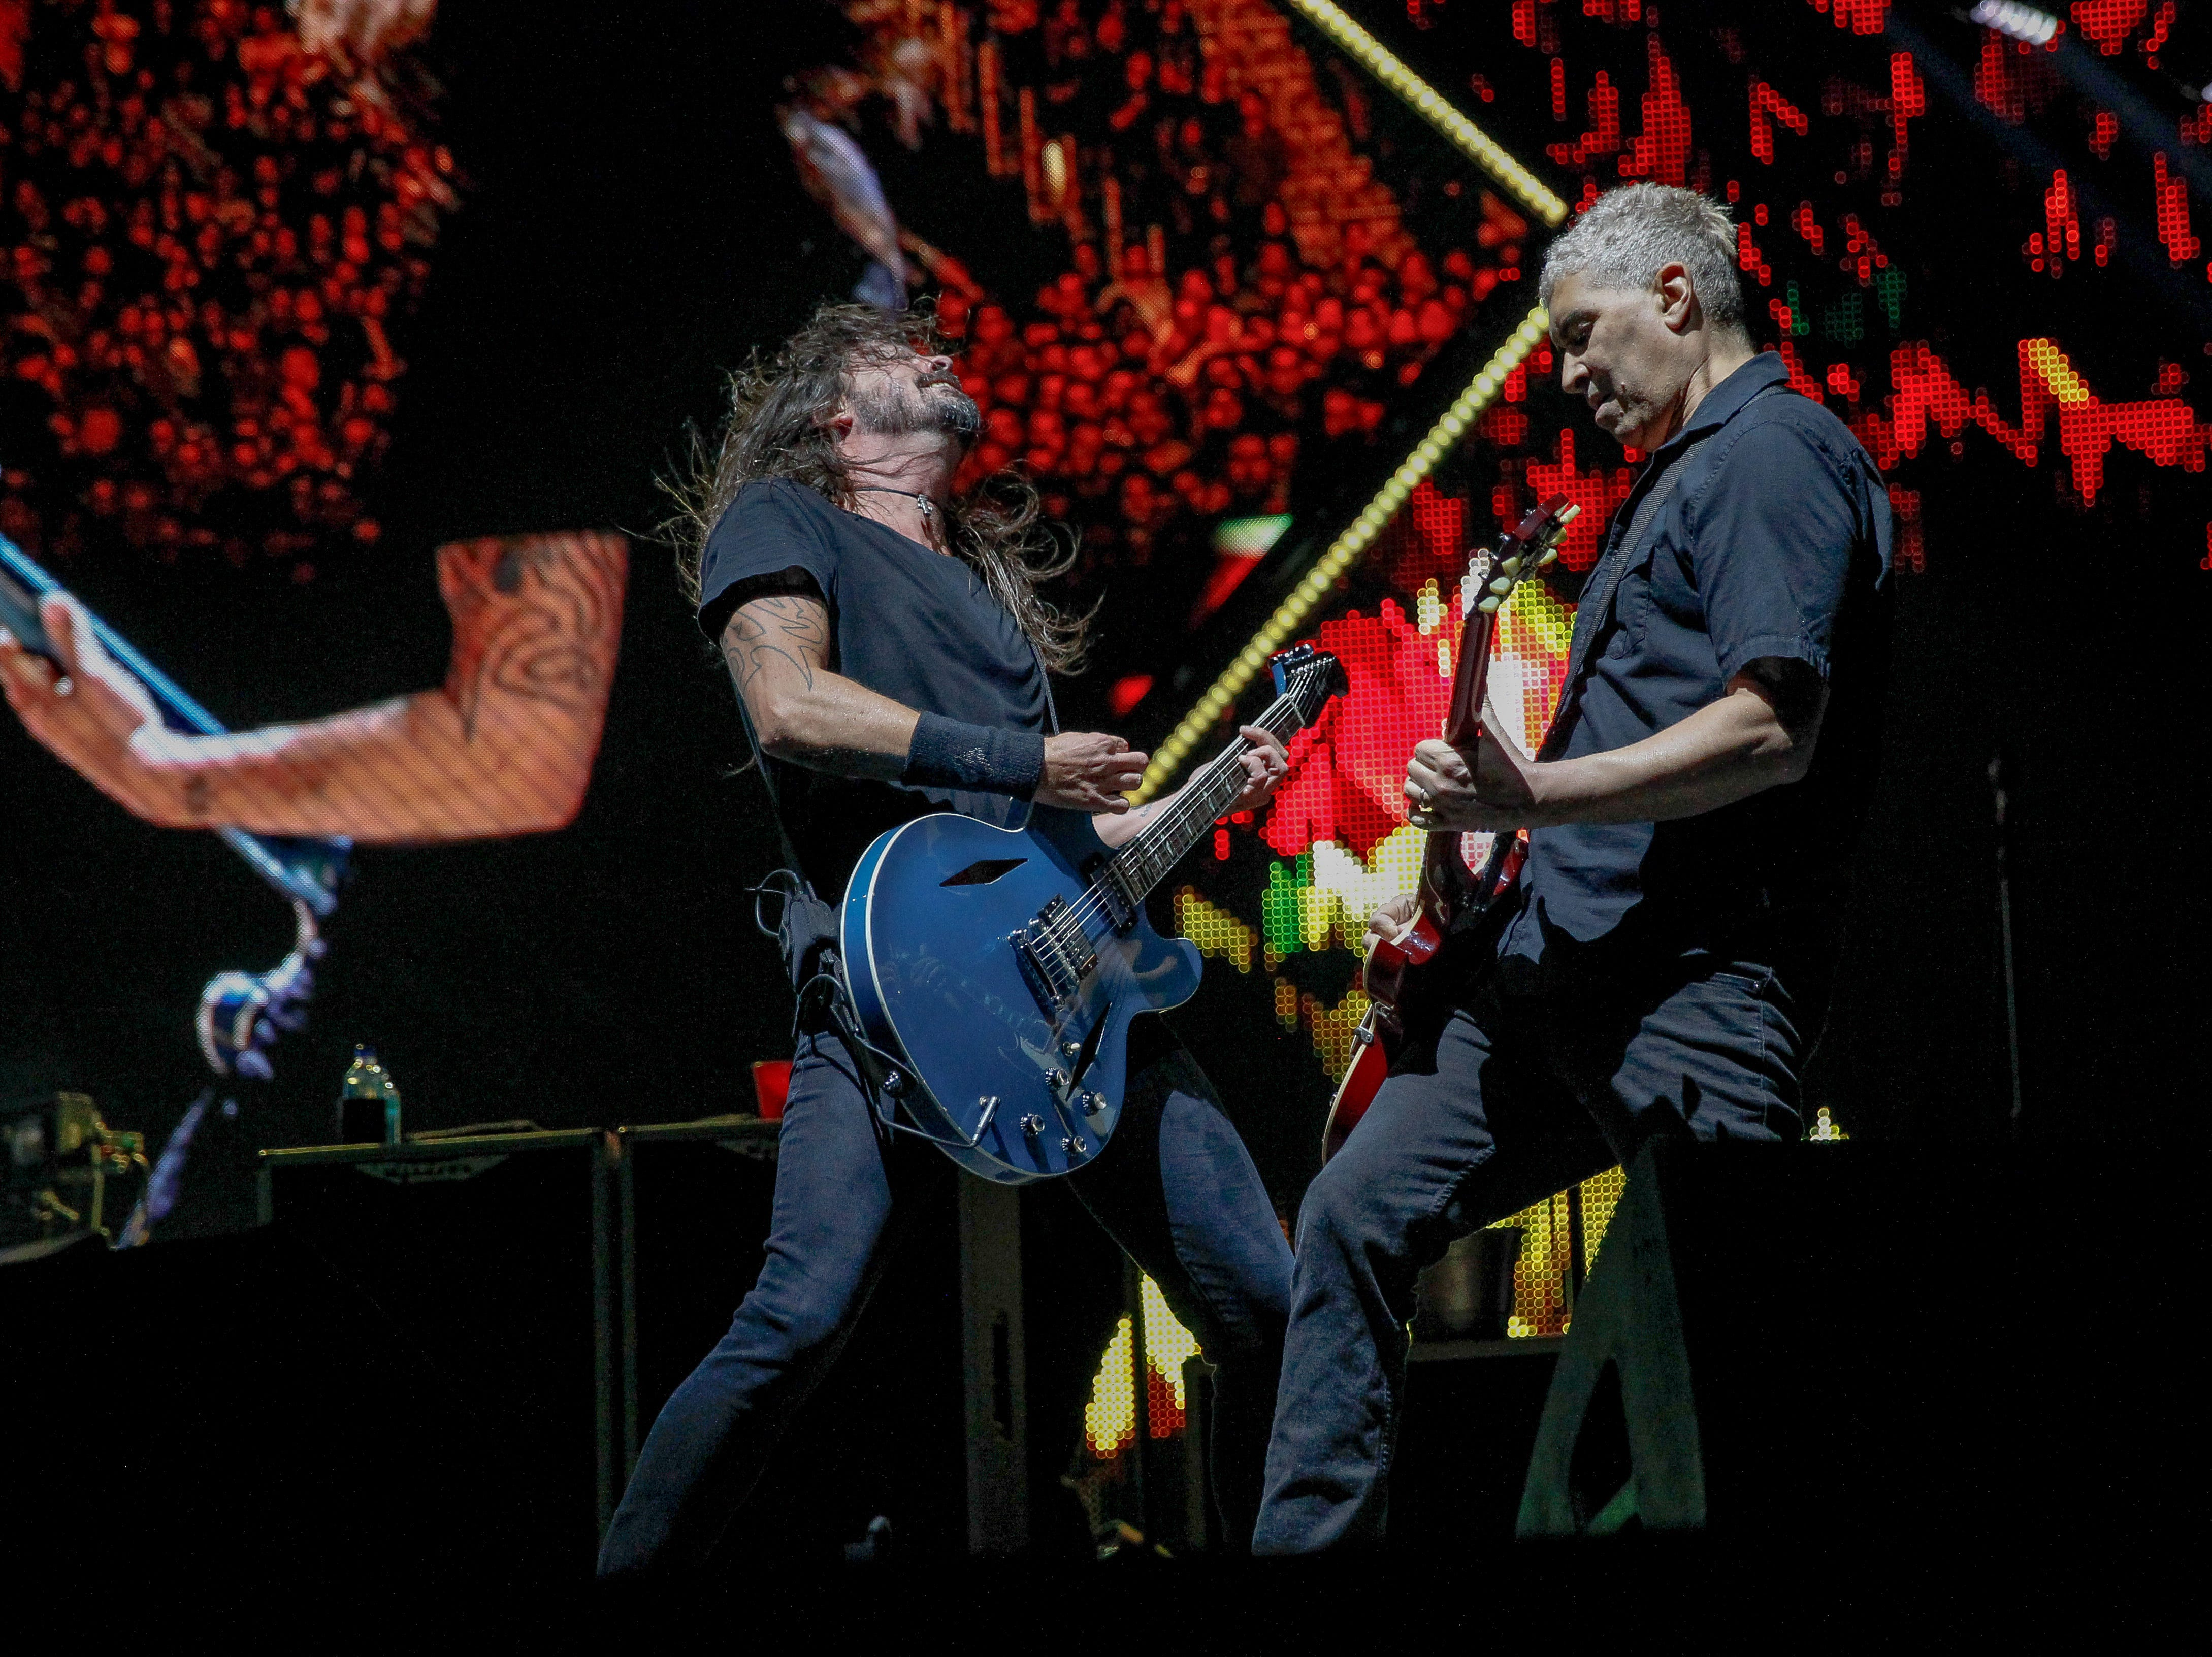 Dave Grohl and Pat Smear jam together during Monday's Foo Fighters show at Little Caesars Arena.